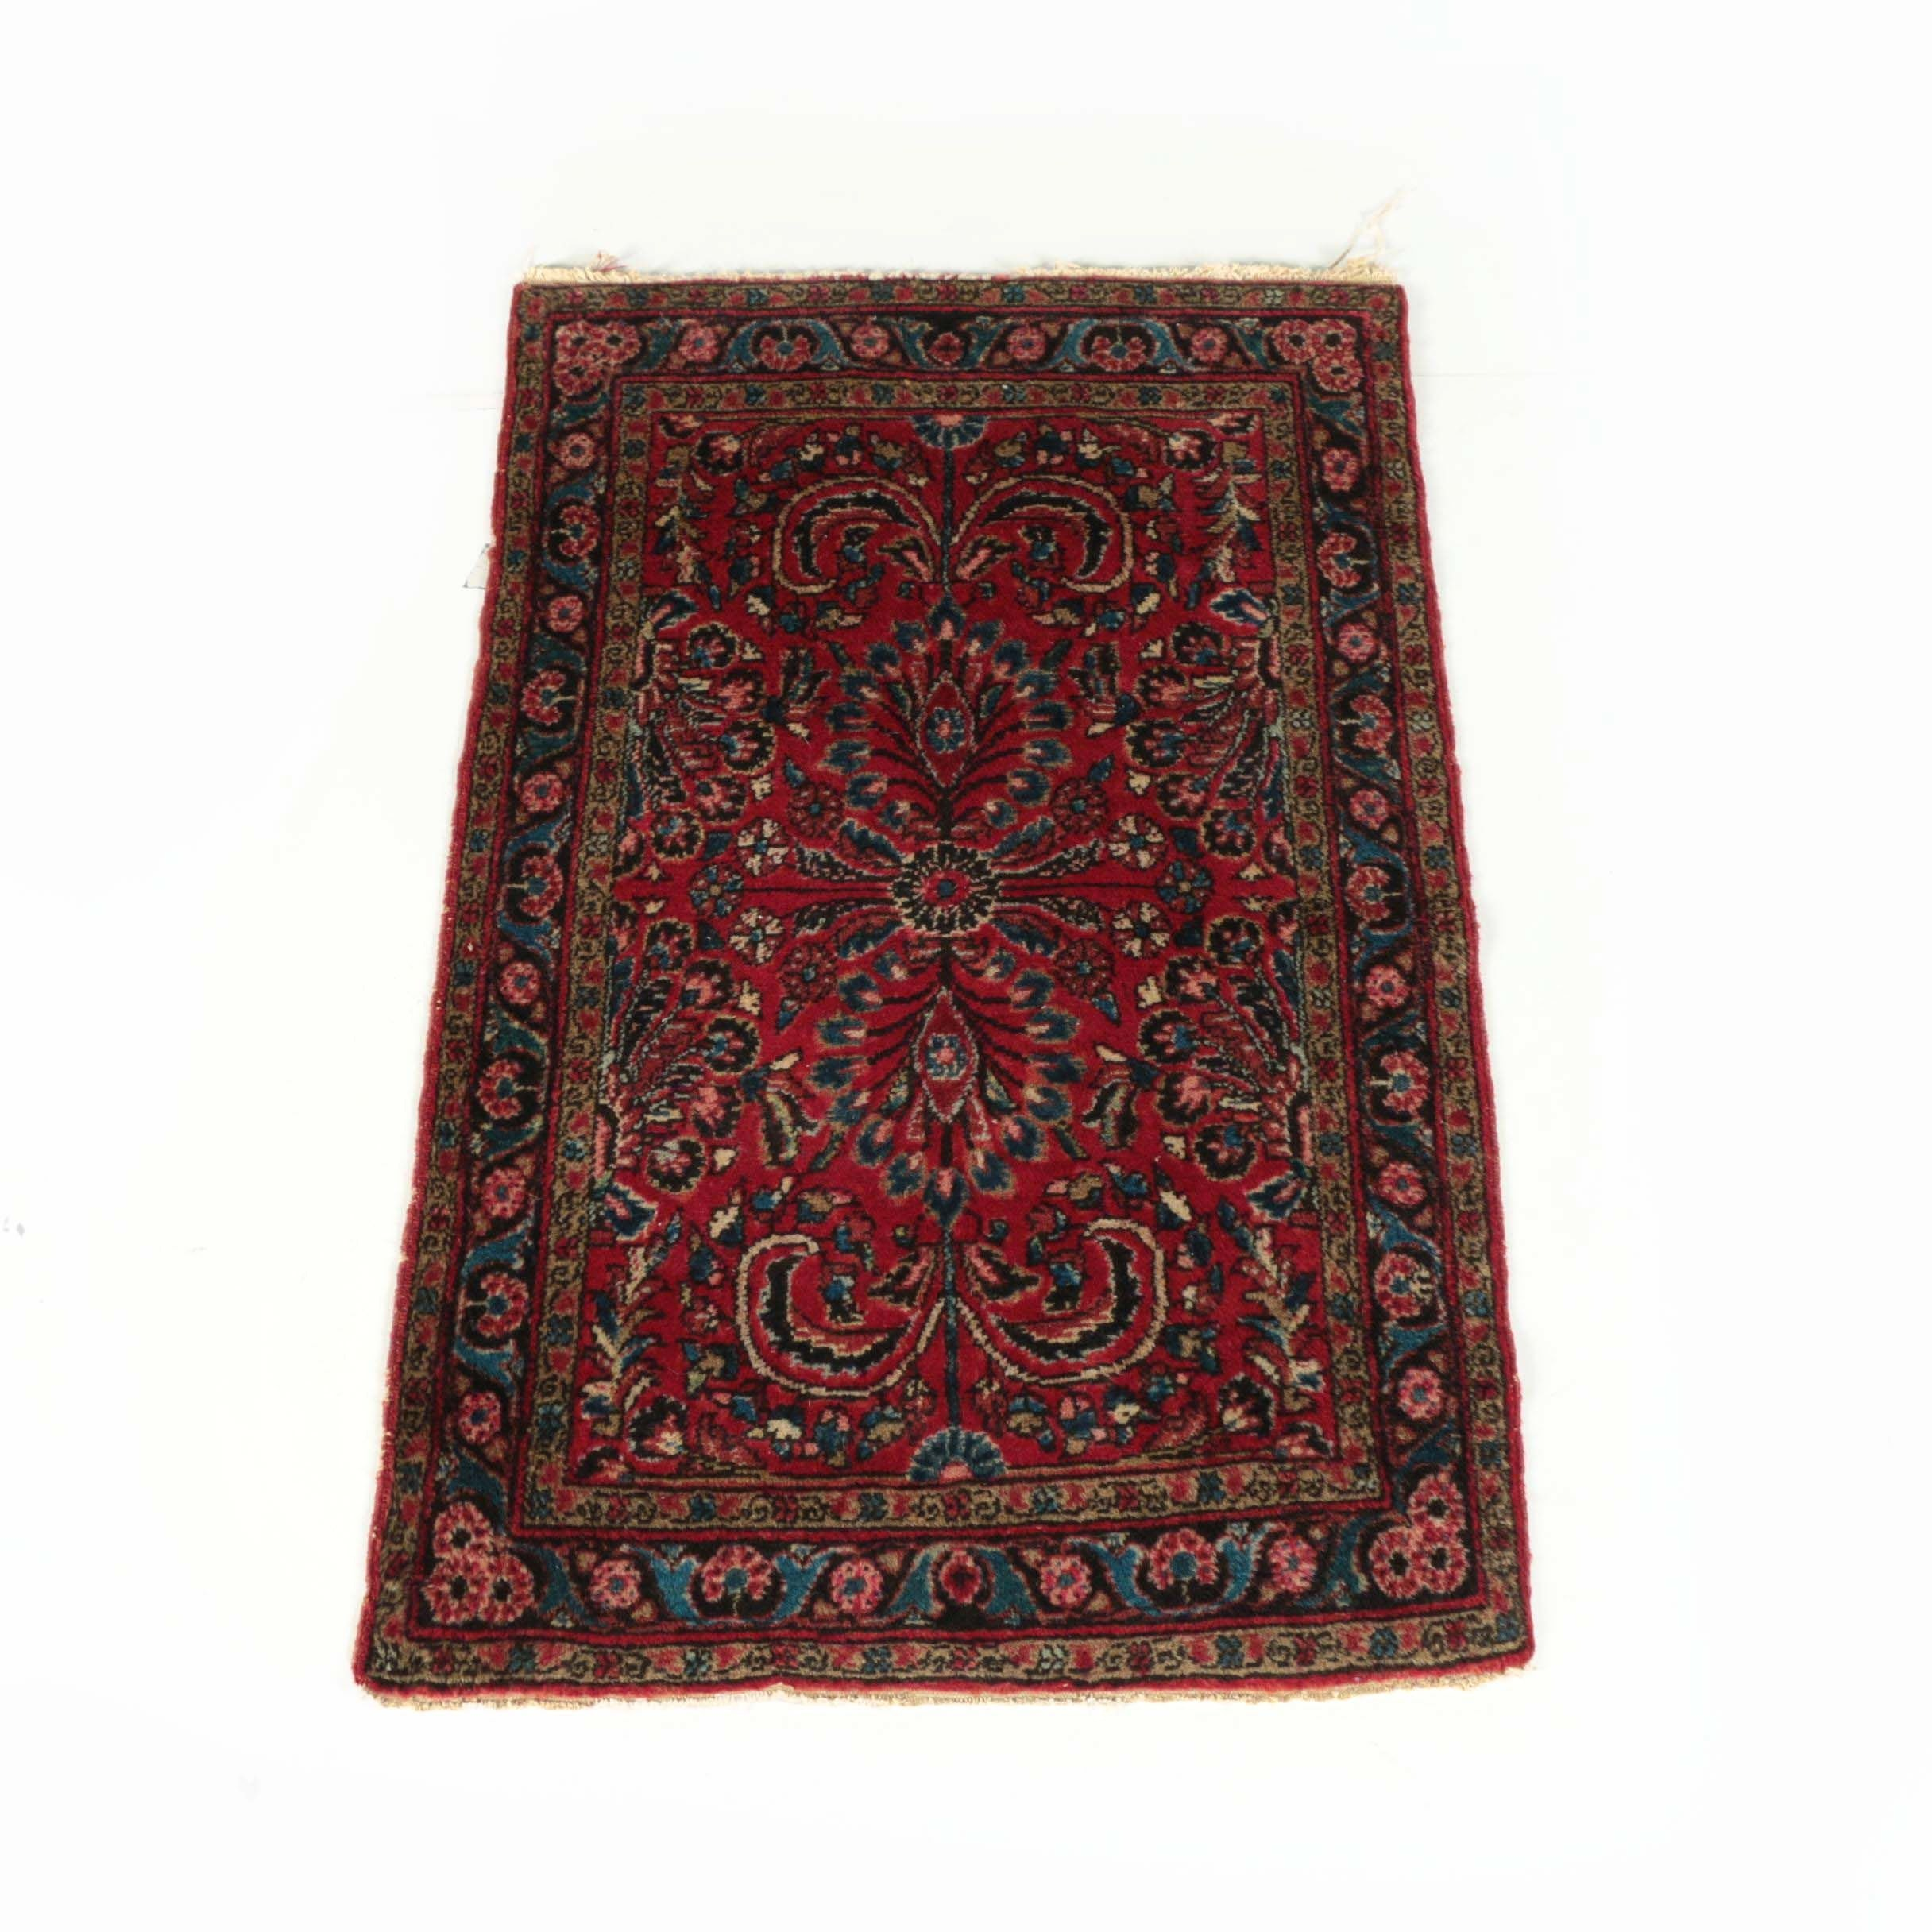 Vintage Hand-Knotted Persian Mehriban Wool Area Rug